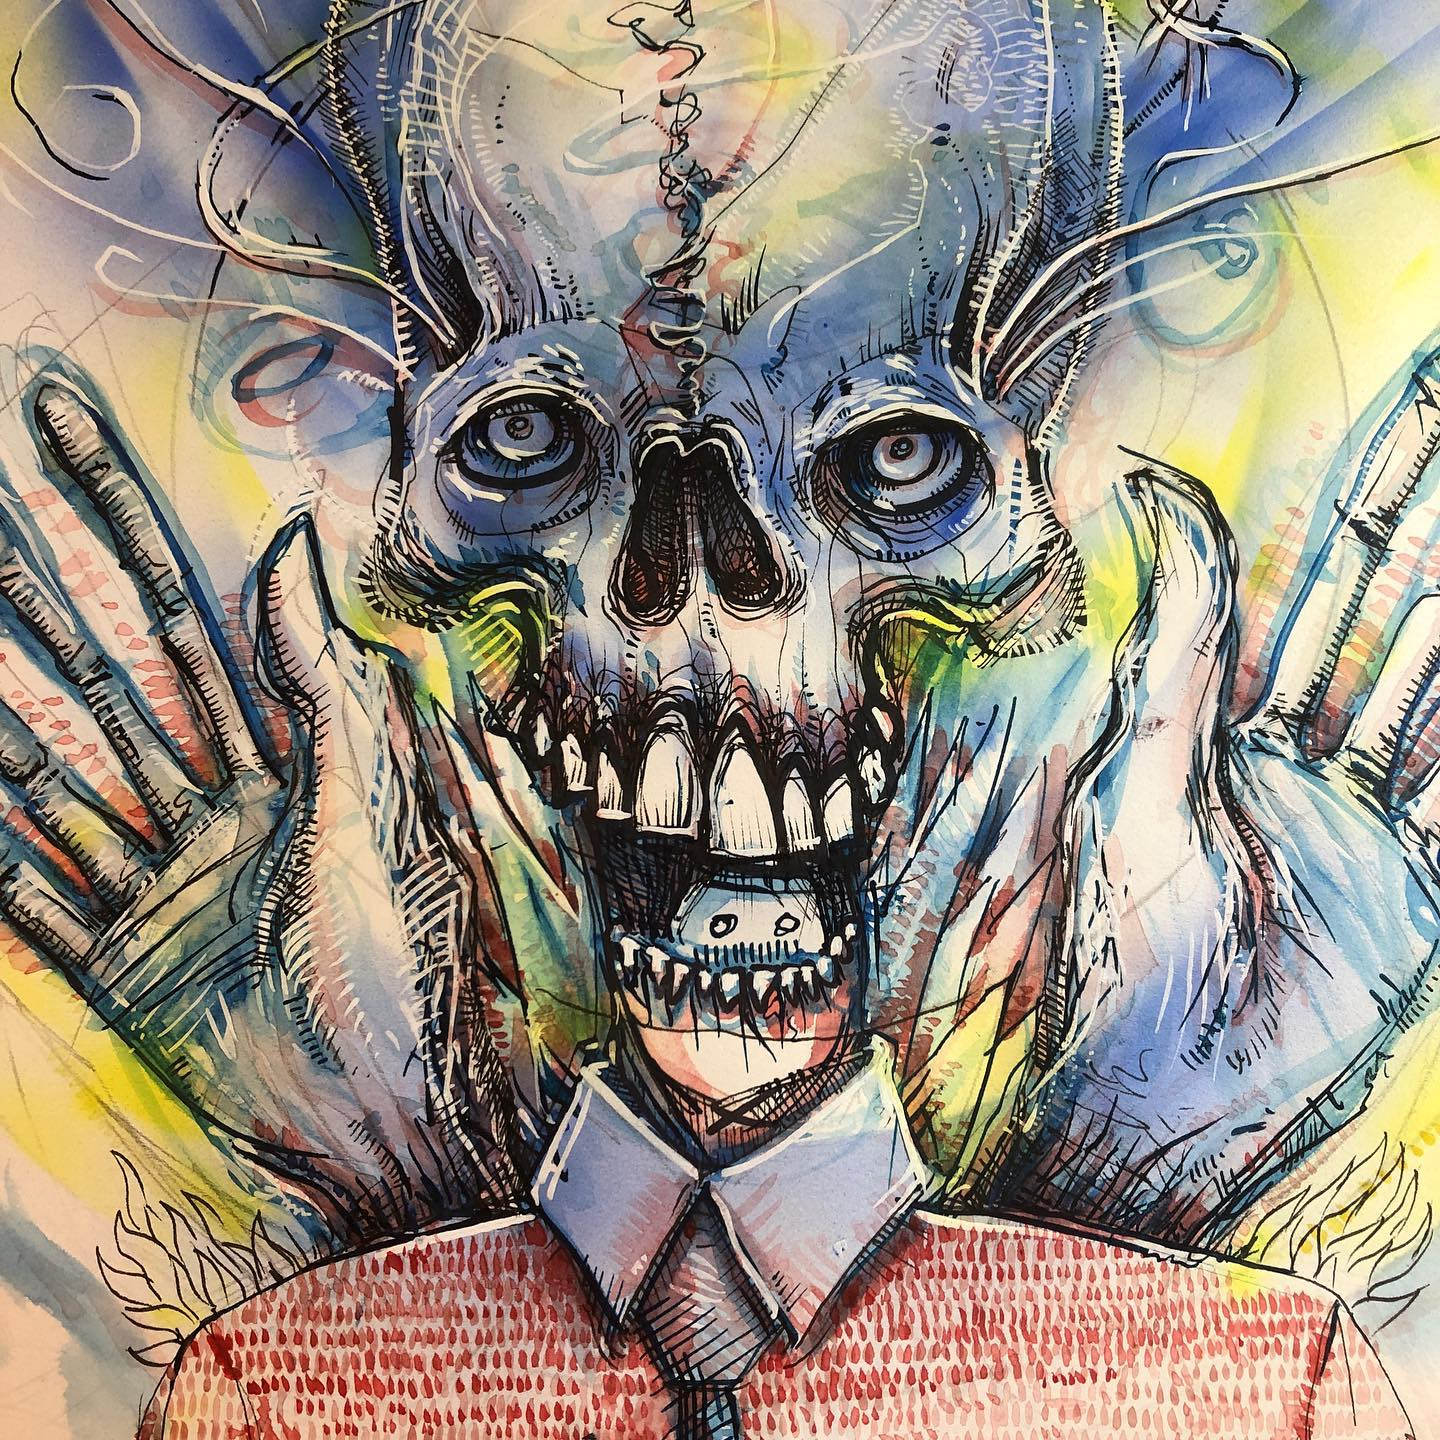 Try To Look Big in progress part 3 - skull and hands ink, watercolor, and airbrush drawing/painting